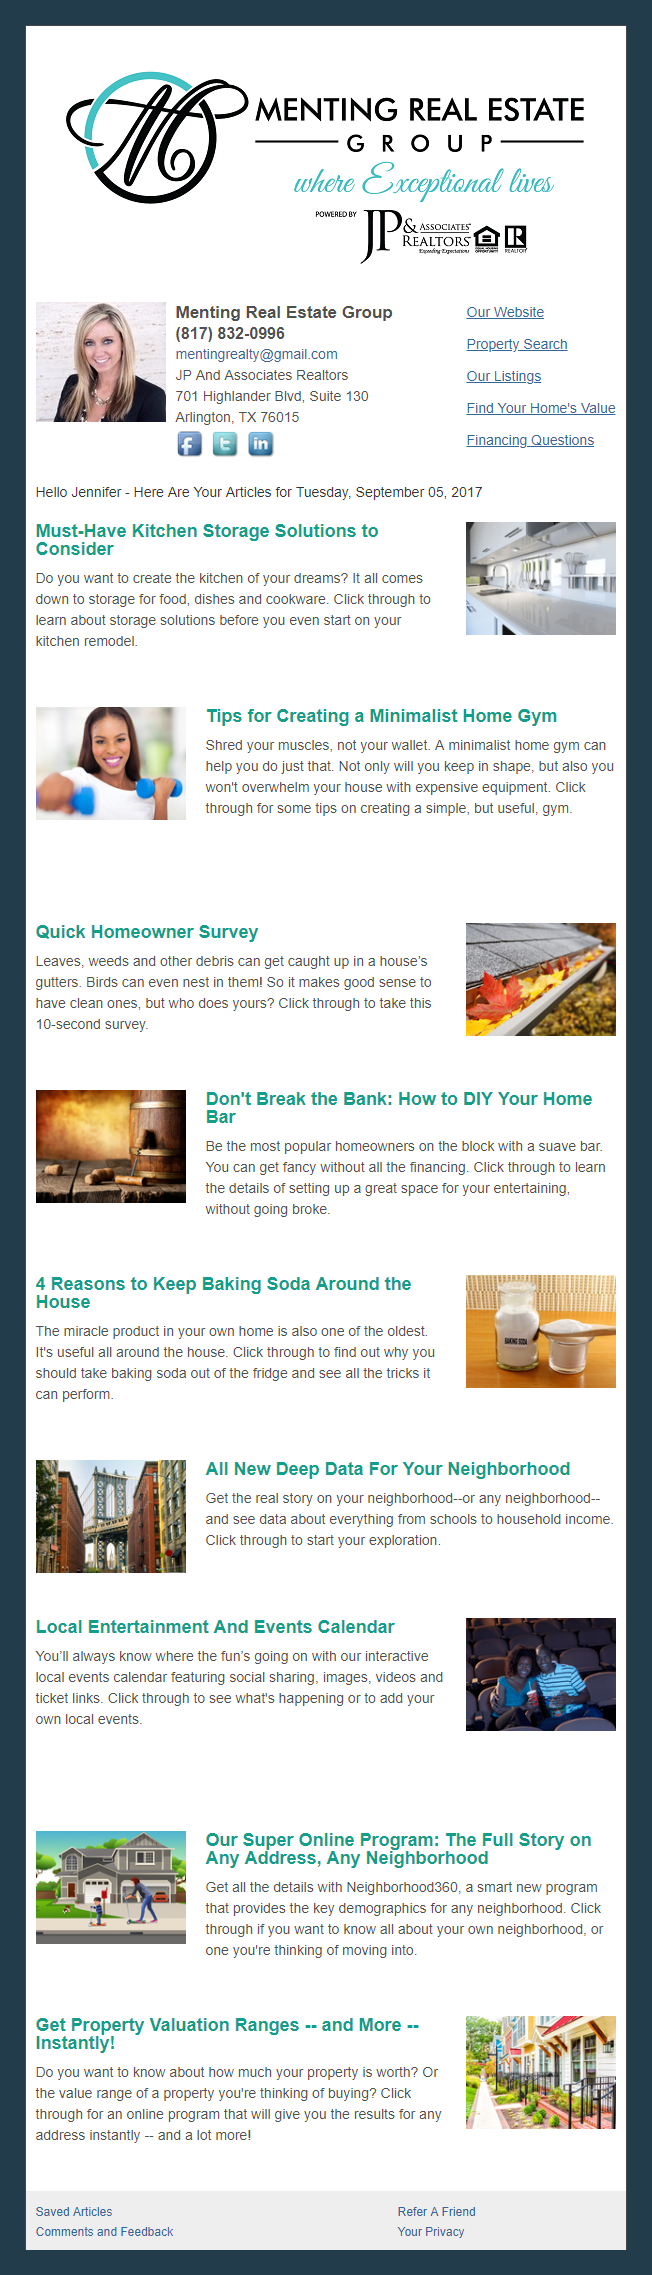 Menting Real Estate Group - HomeActions Sample Email Newsletter